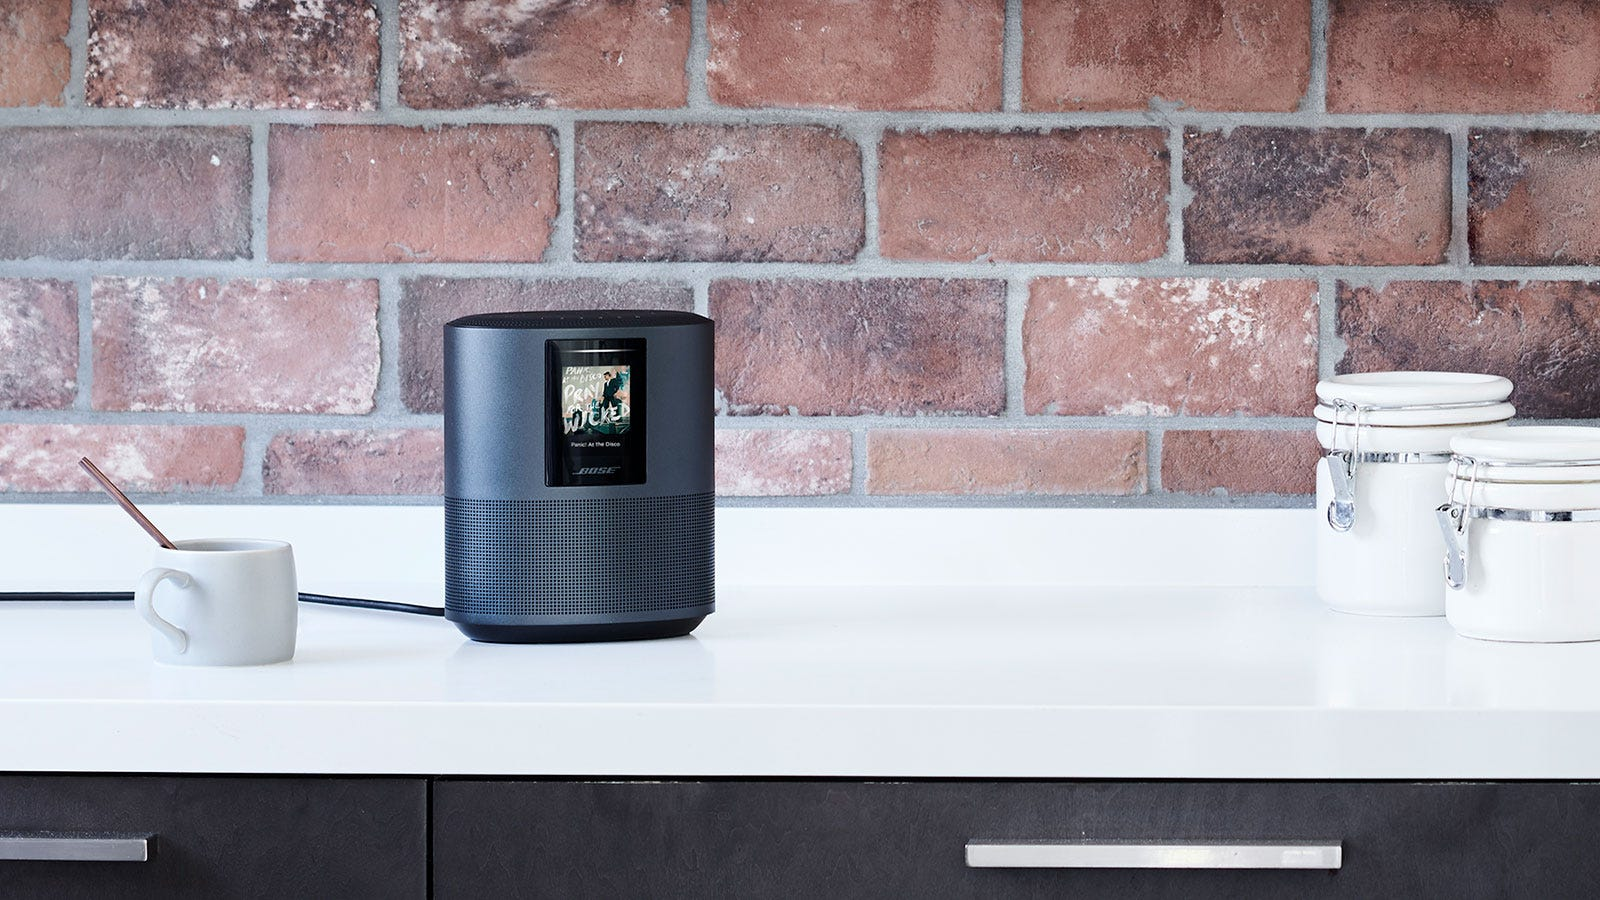 For $400, Bose's First Smart Speaker Better Sound Amazing